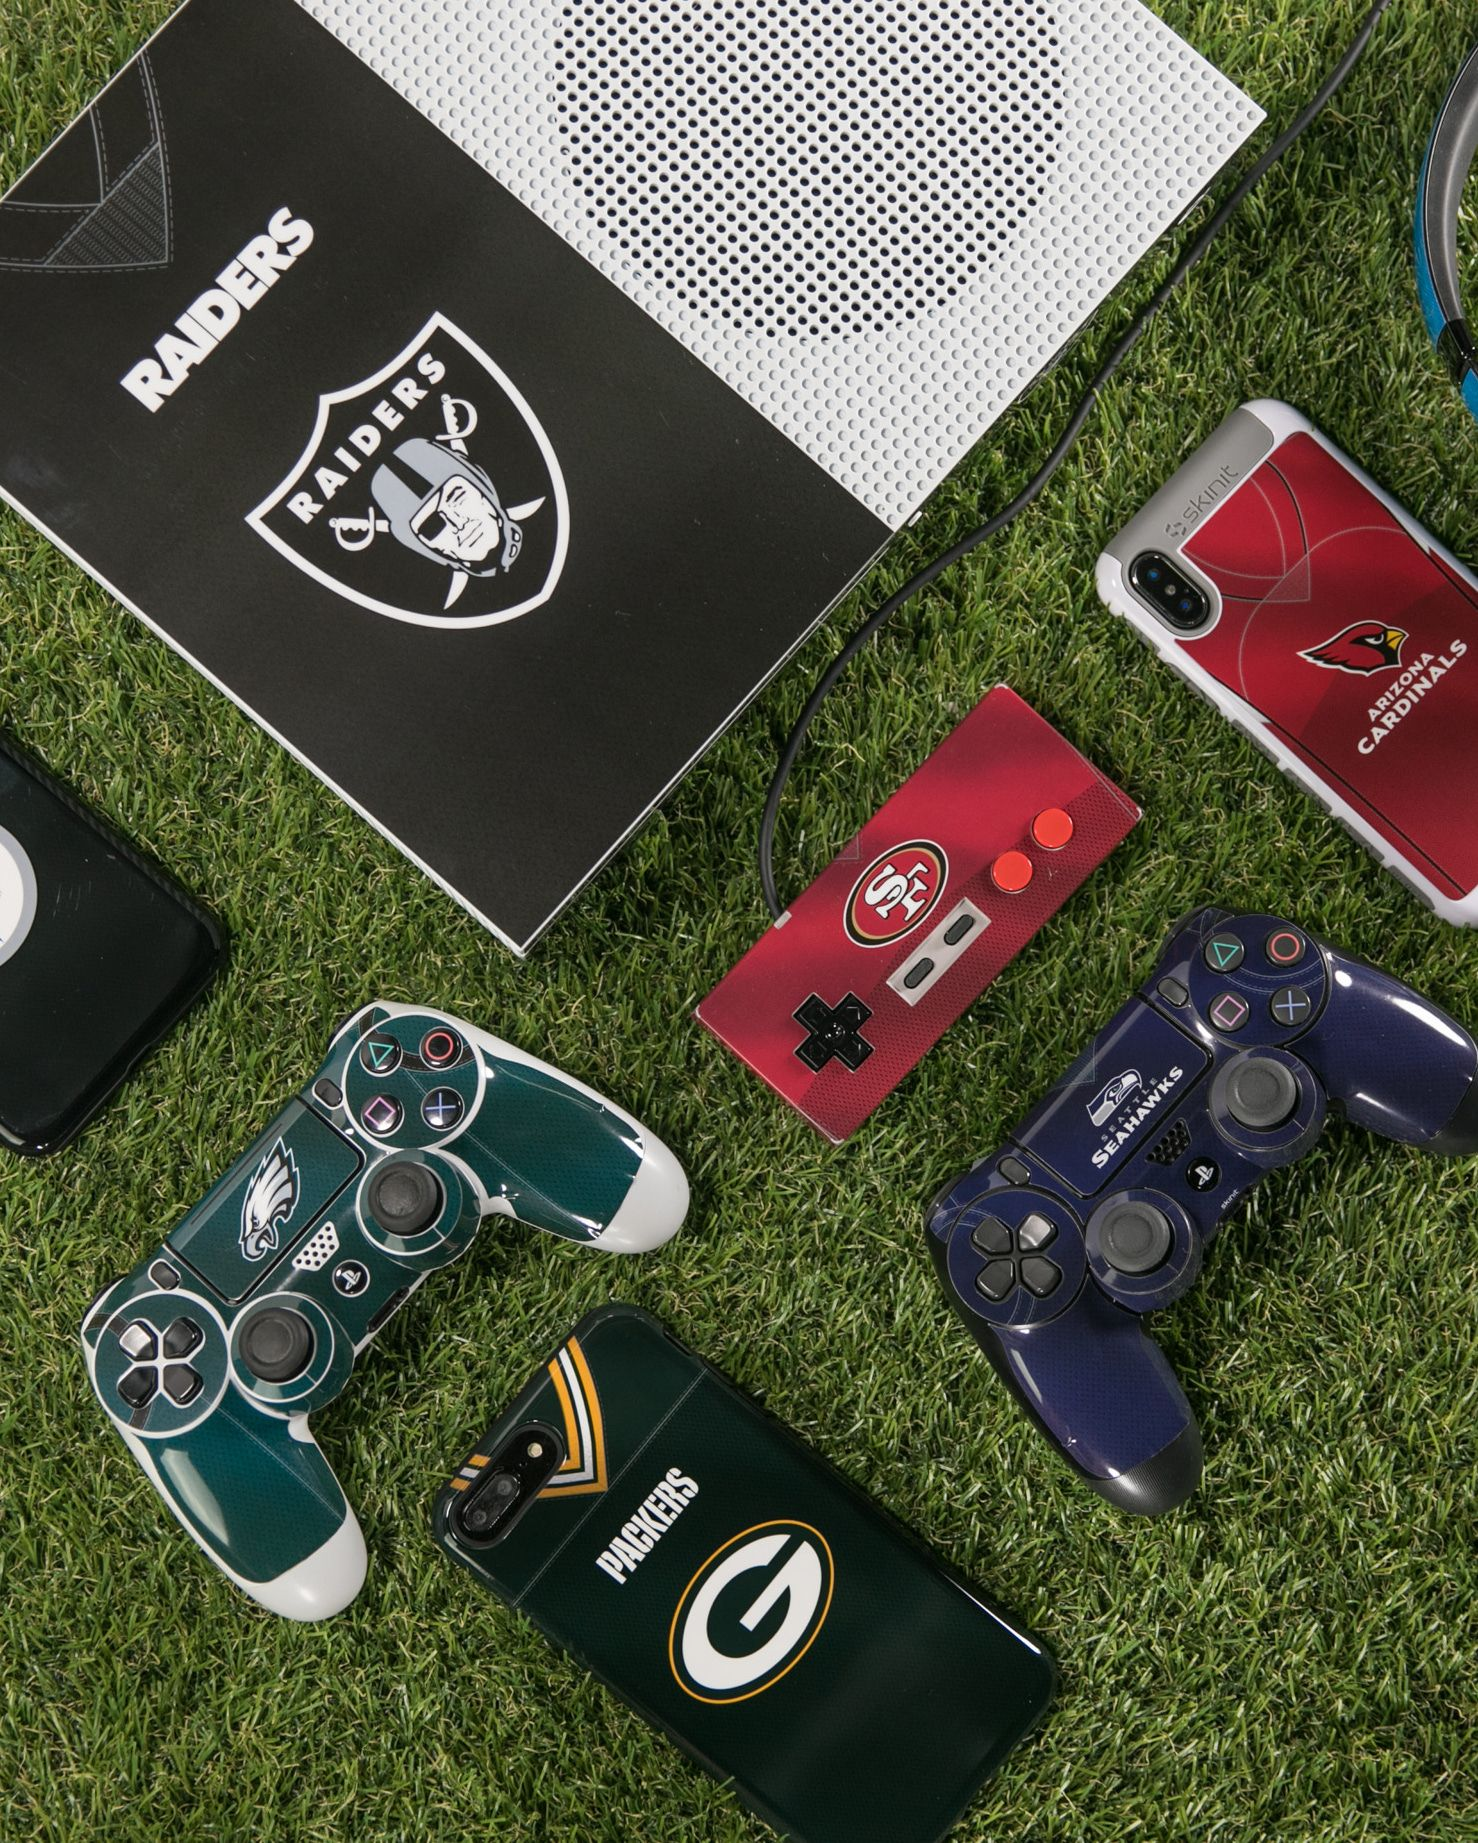 Check Out All My Nfl Ps4 Controller Concept Green Bay Packers Design Packers Playstation Nfl Greenbay Greenbaypackers Ps4 Controller Nfl Gaming Products